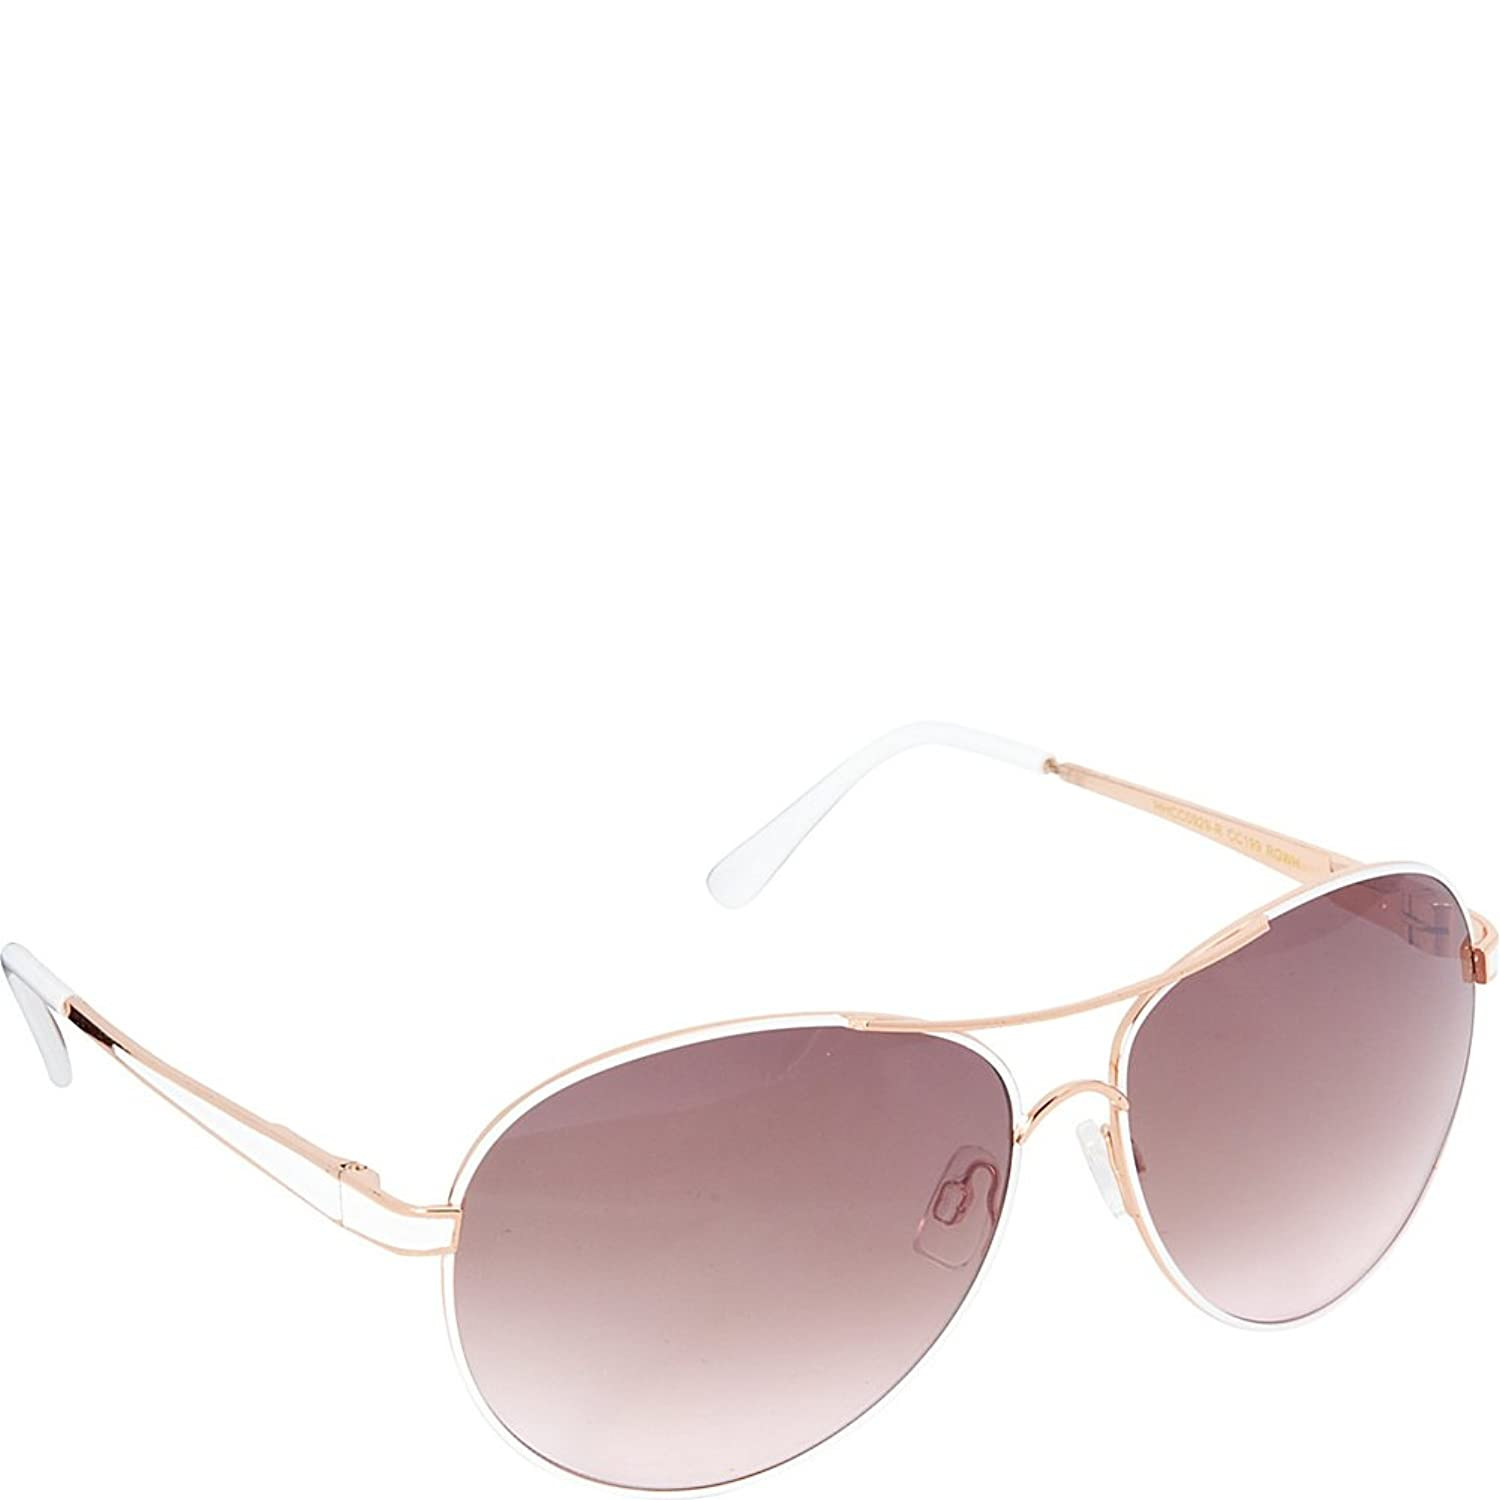 Circus by Sam Edelman Sunglasses Aviator Sunglasses